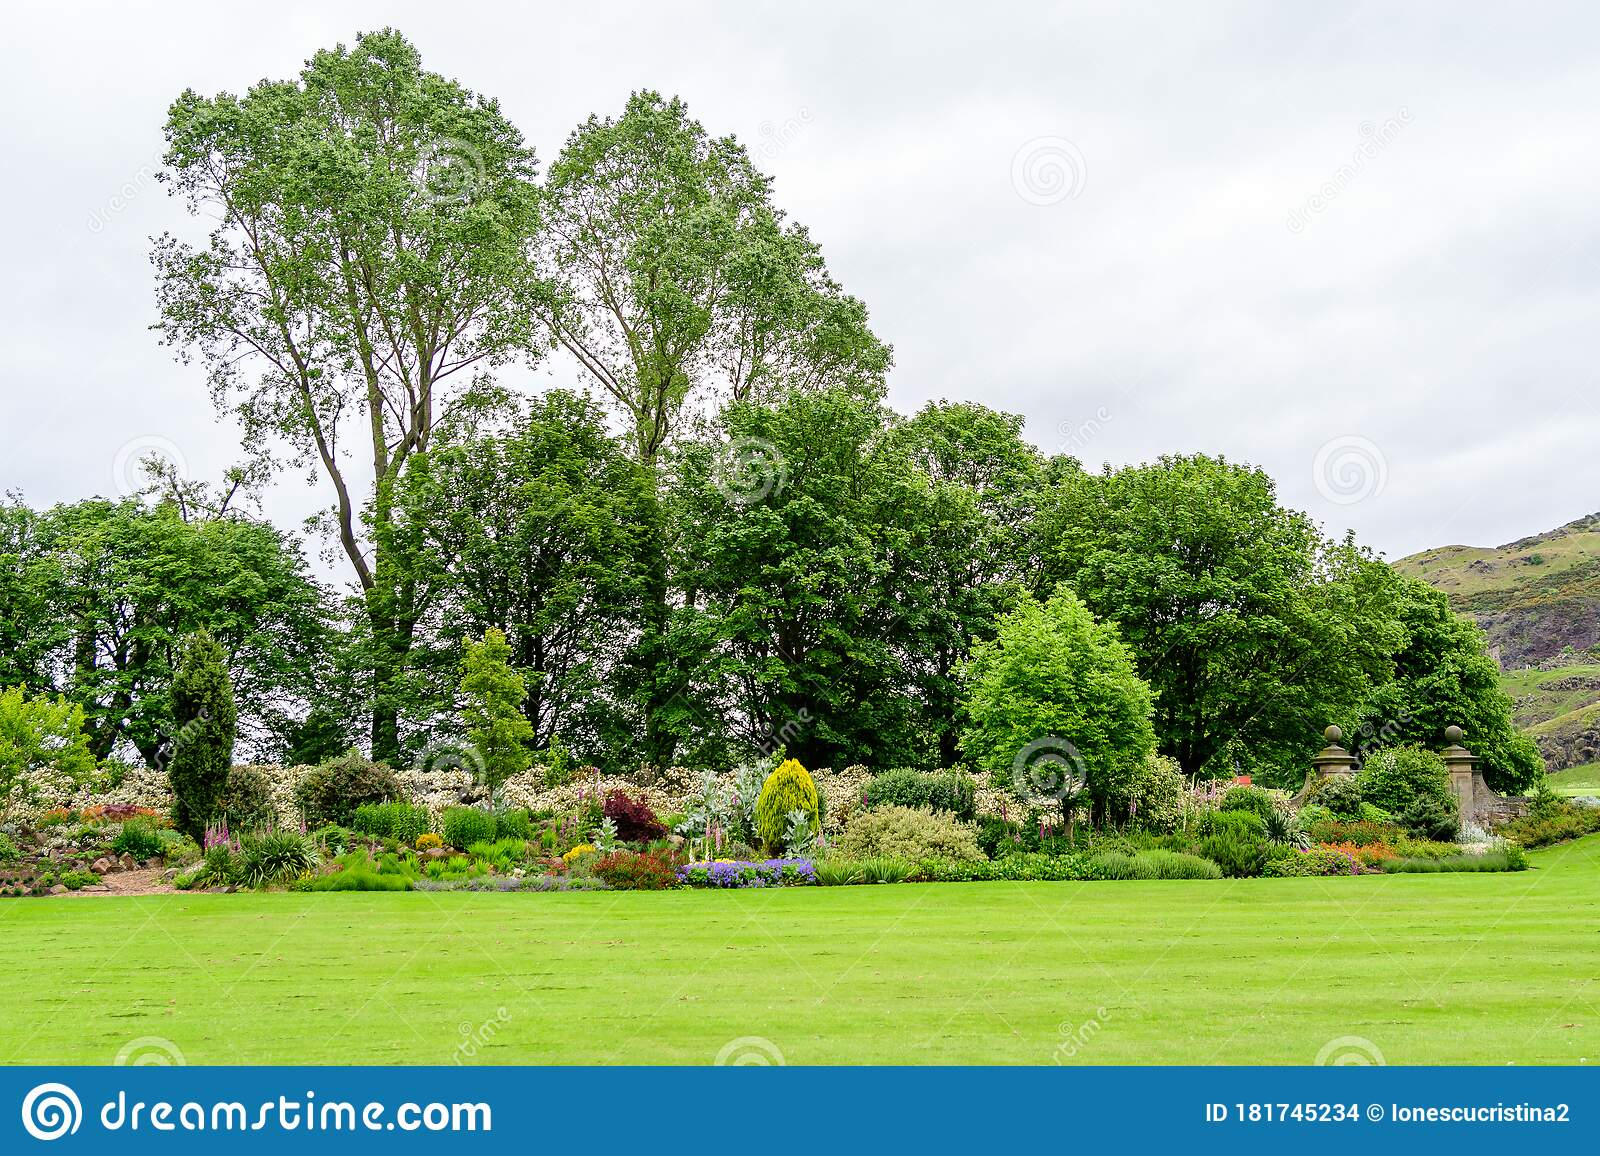 Minimalist Garden Landscape With Trees Bushes And Different Plants In A Cloudy Day In Scotland United Kingdom Typical British C Stock Photo Image Of Natural Perspective 181745234